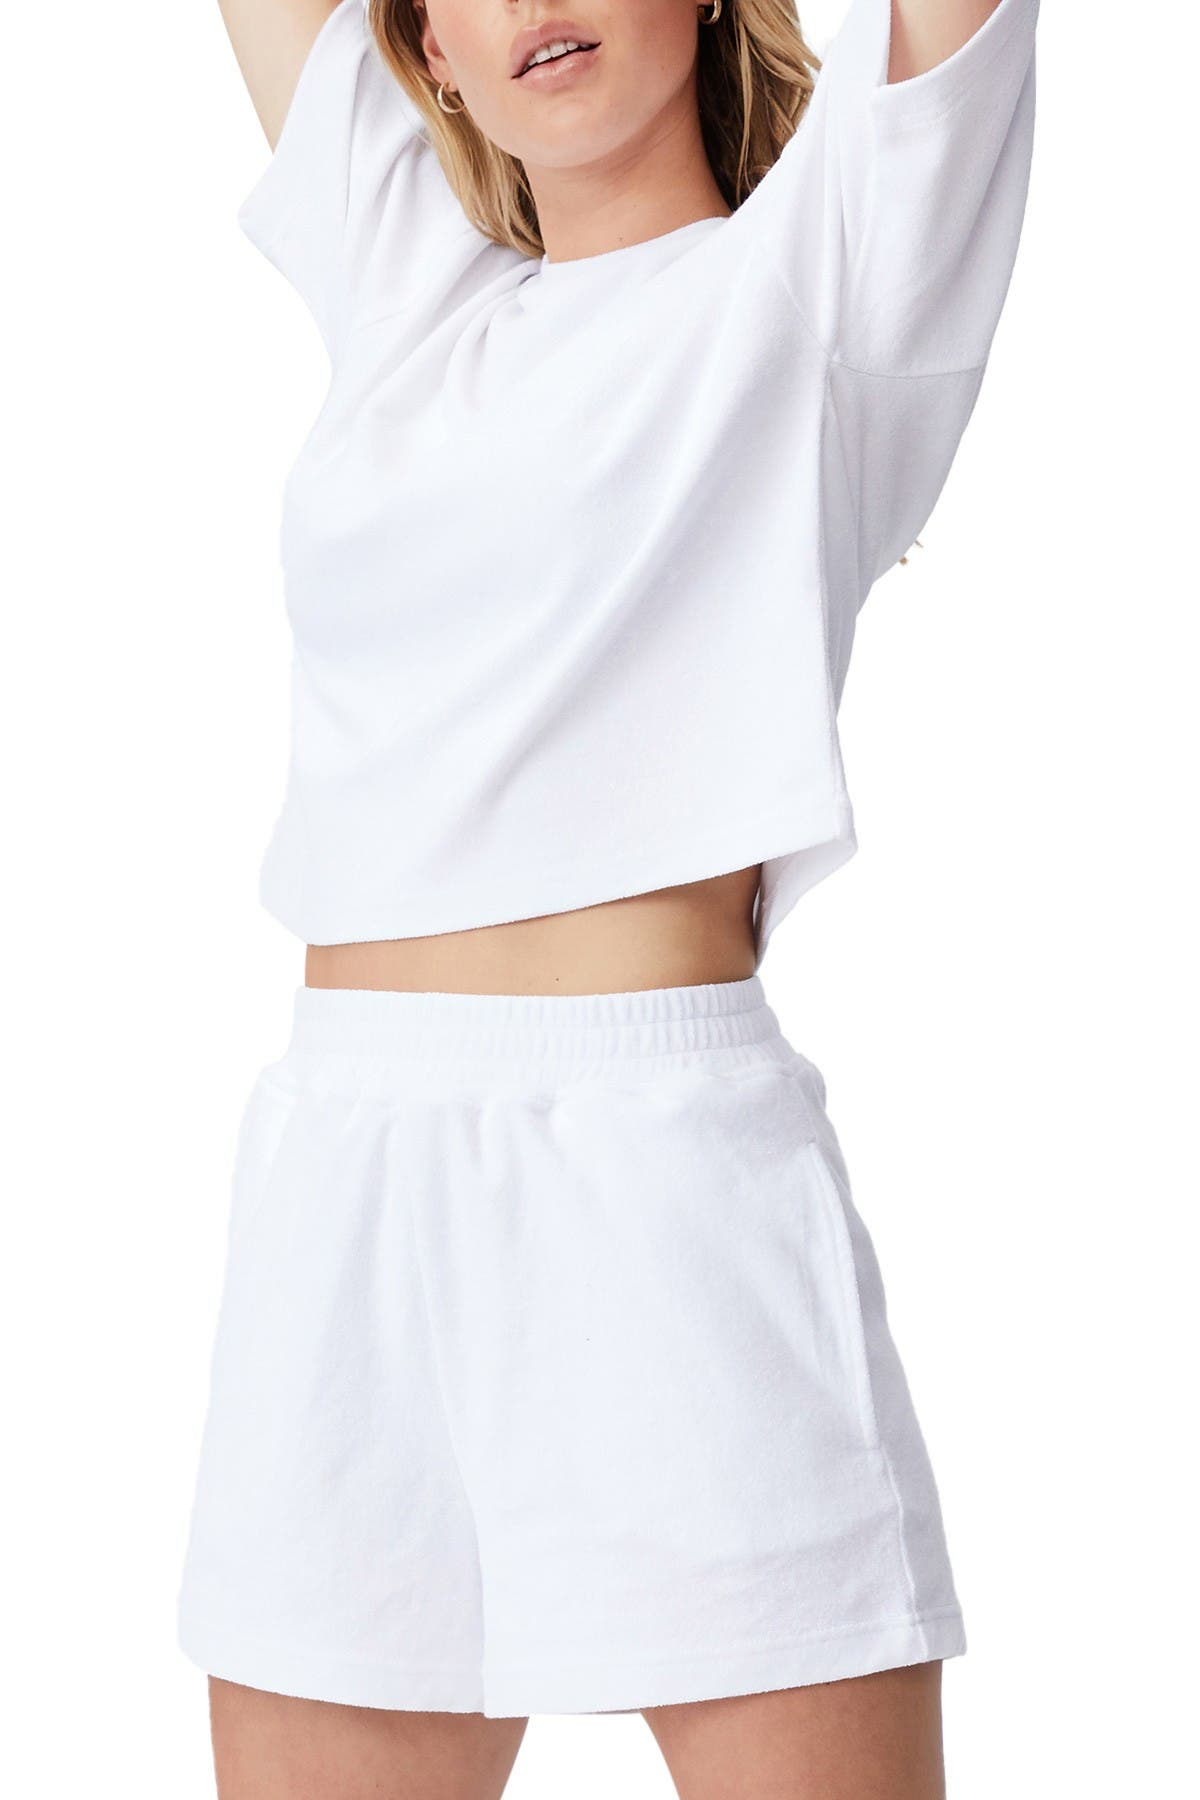 Image of Cotton On Terry Towelling Shorts